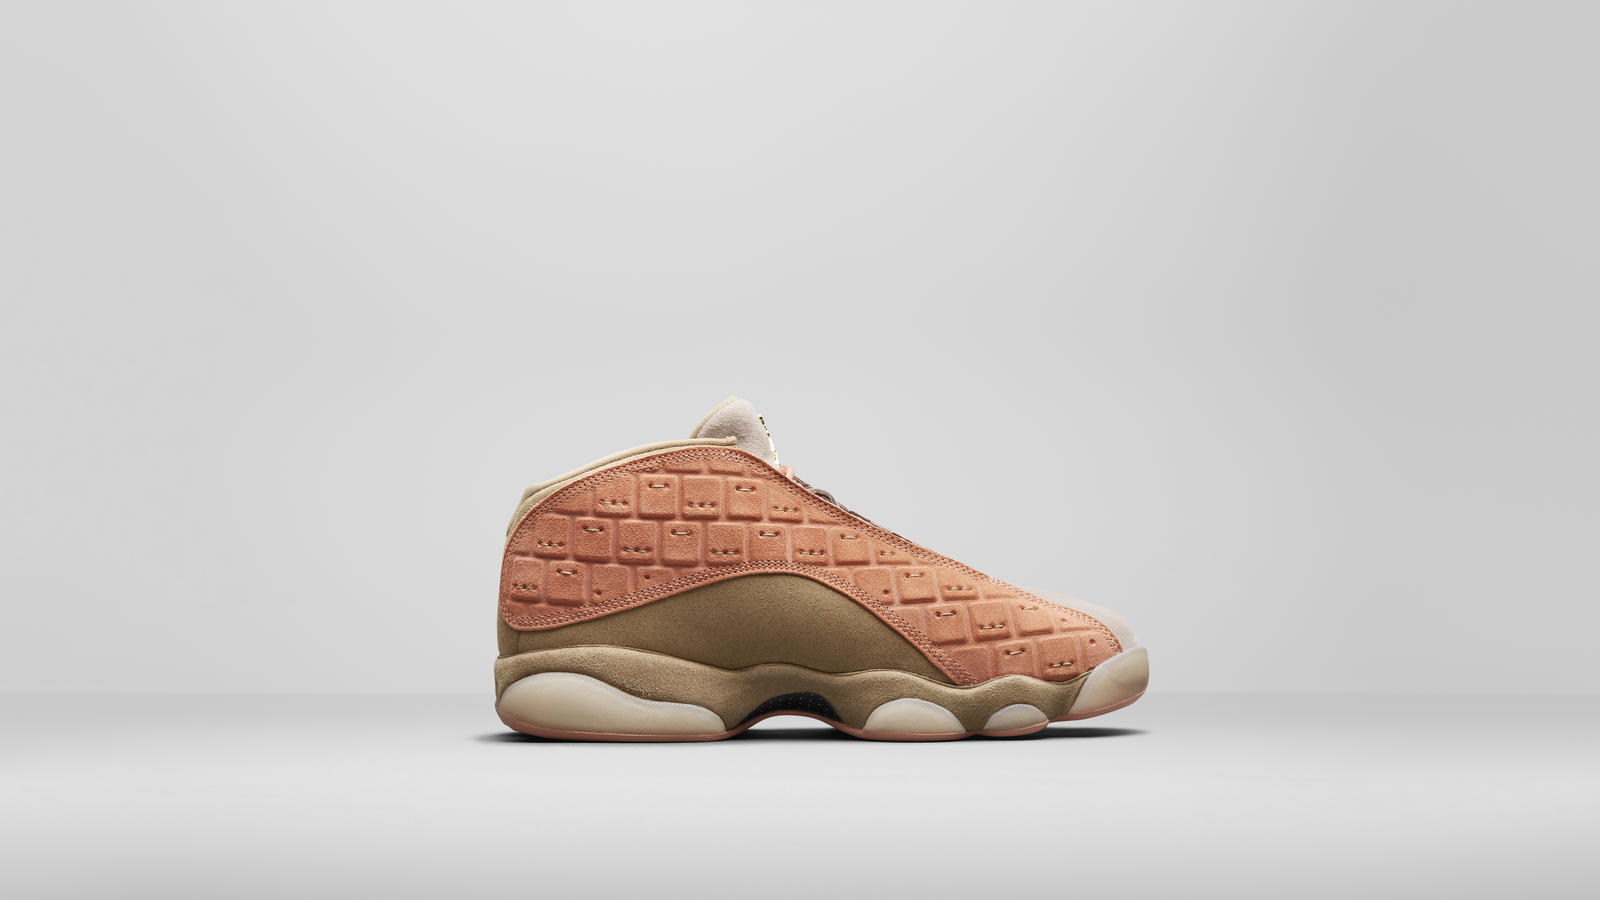 CLOT x Air Jordan XIII Low 3